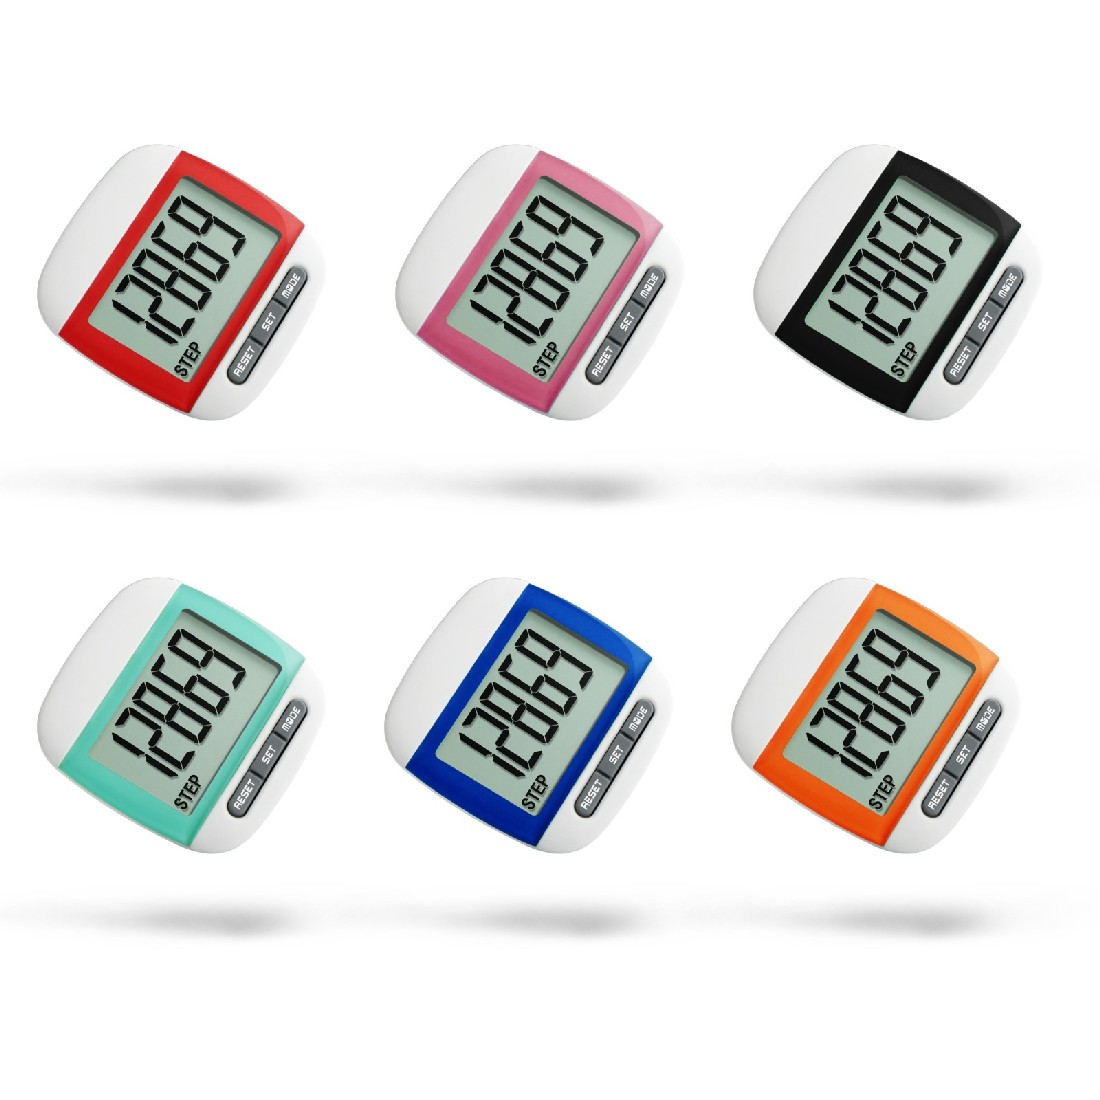 New Mini Waterproof Step Movement Calories Counter Multi-Function Digital Pedometer for Running Fitness